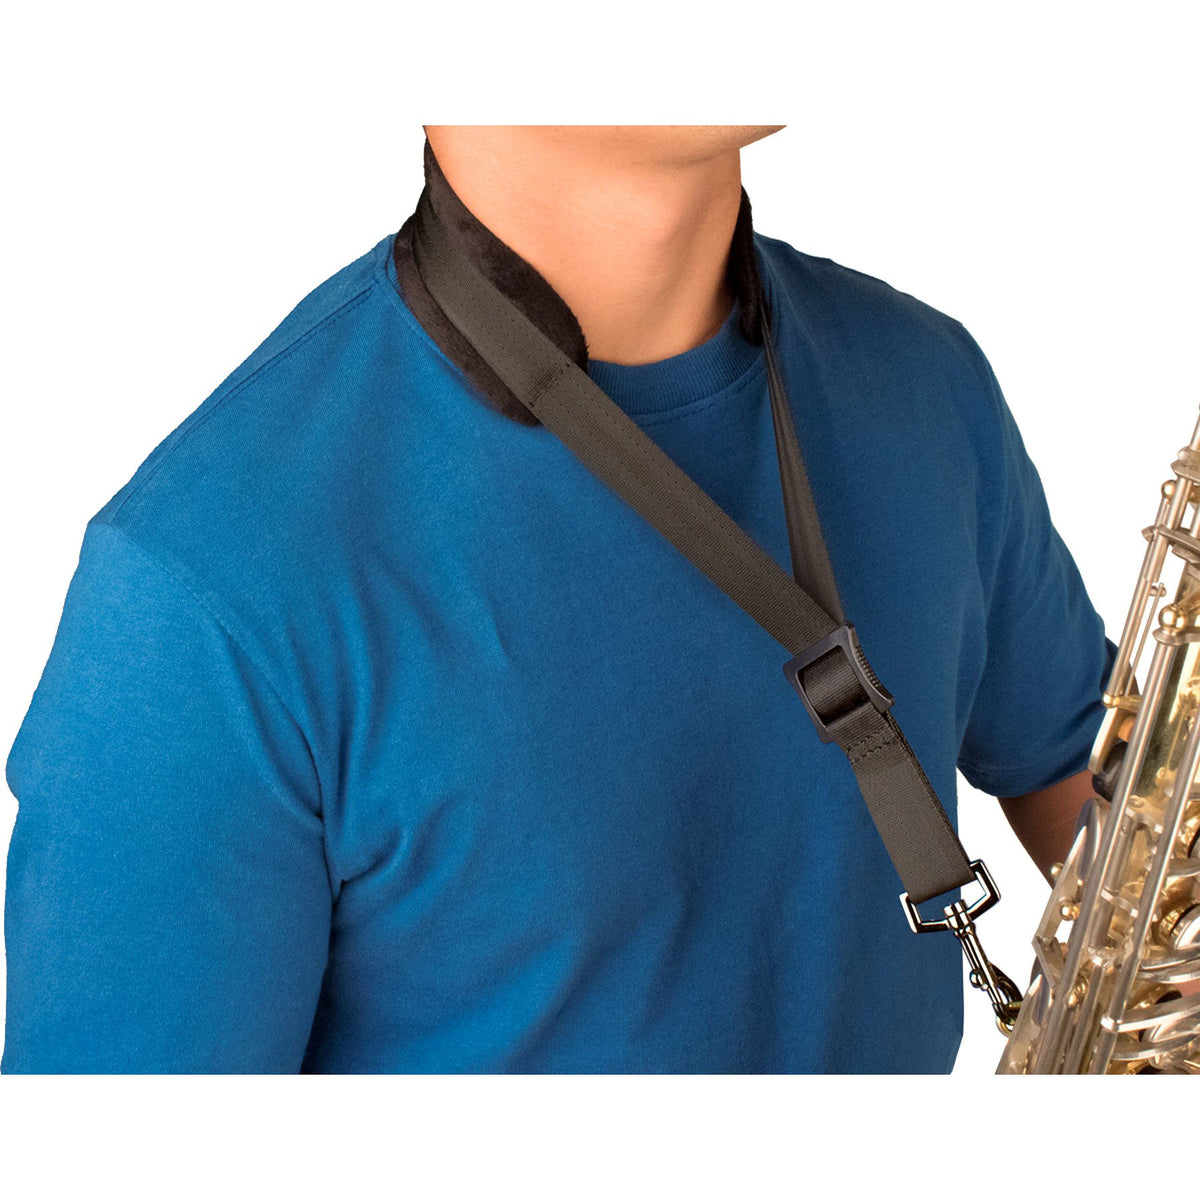 Protec - Saxophone Neck Strap Featuring Velour Neck Pad and Metal Snap-Accessories-Protec-Music Elements